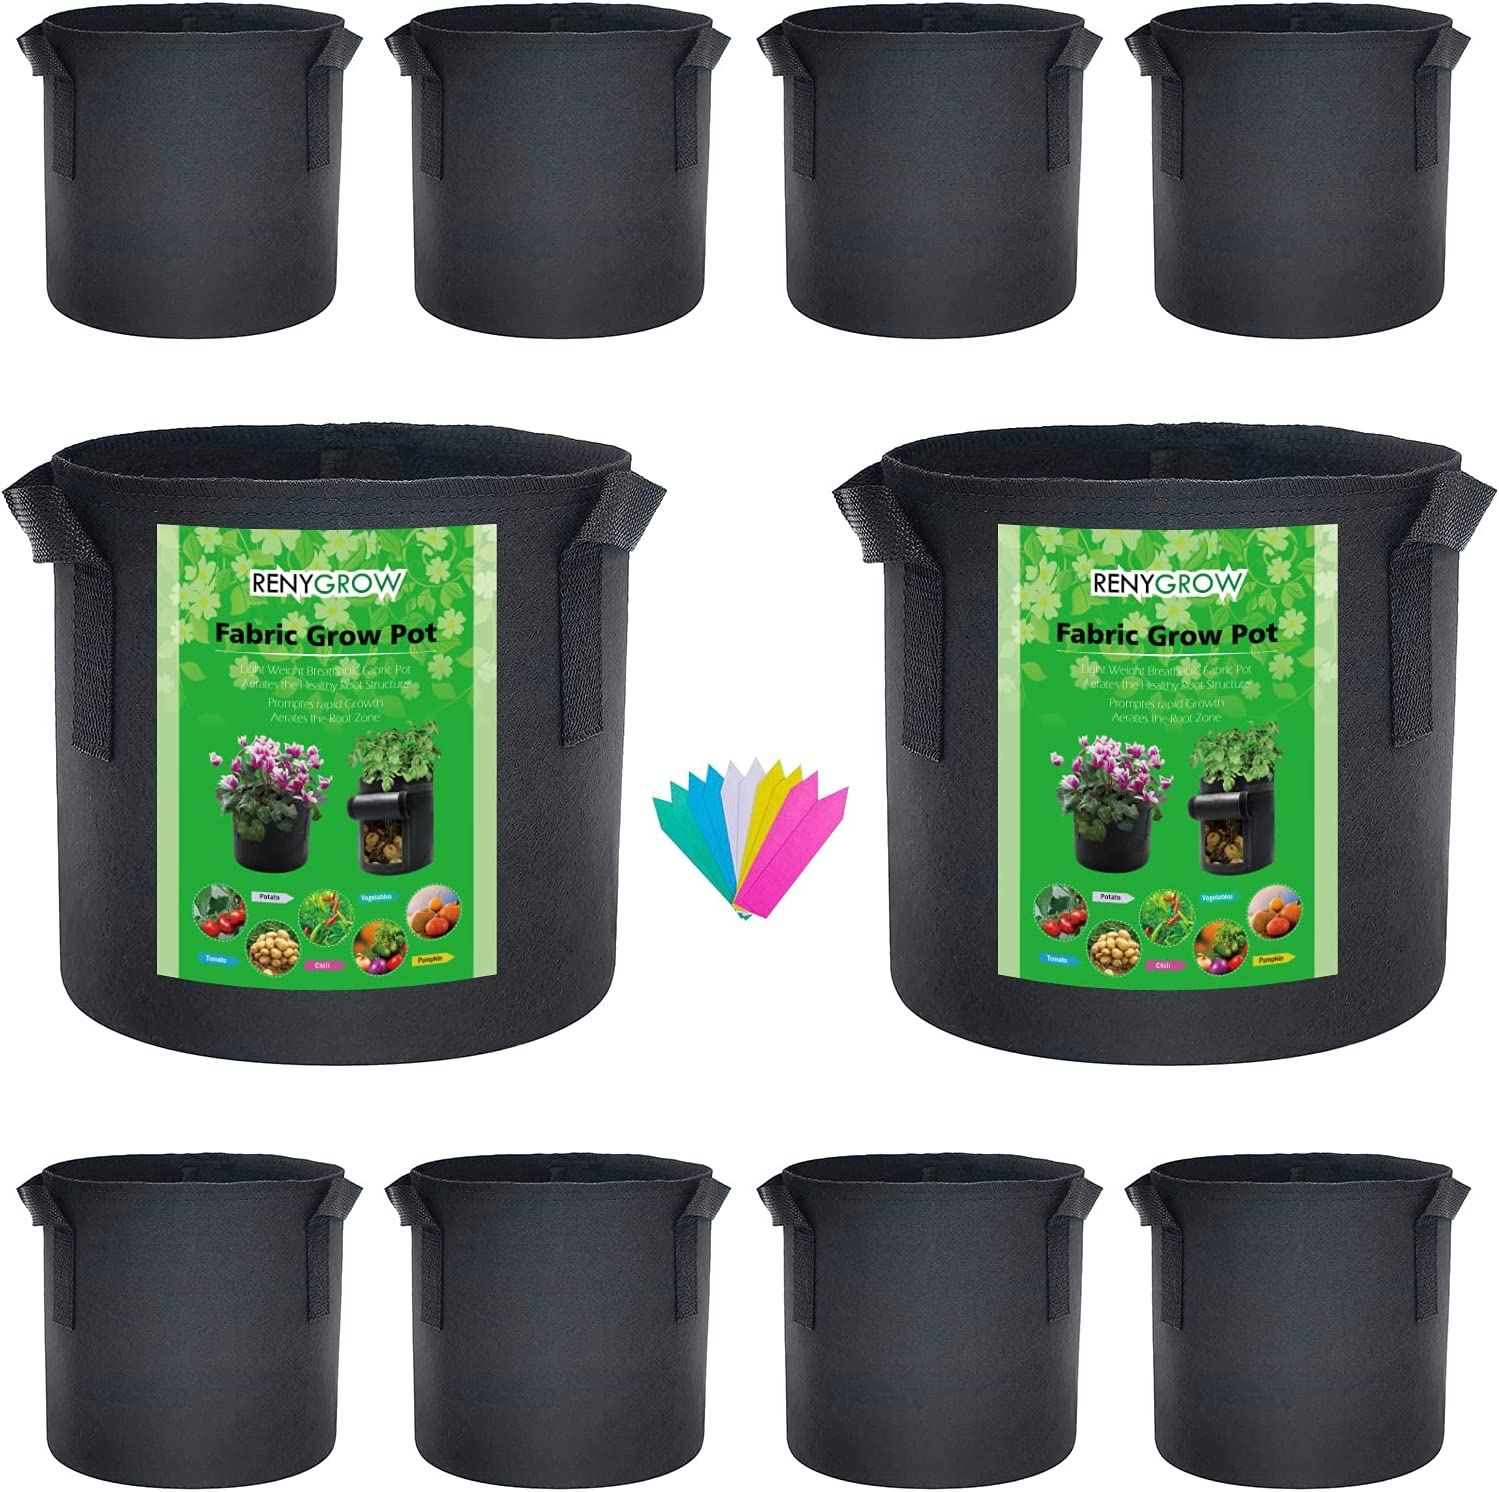 Renygrow 5 Gallon 10 Pack Fabric Planters Grow Bags Fabric Pots Garden Containers for Vegetables Strawberry Potato Grow